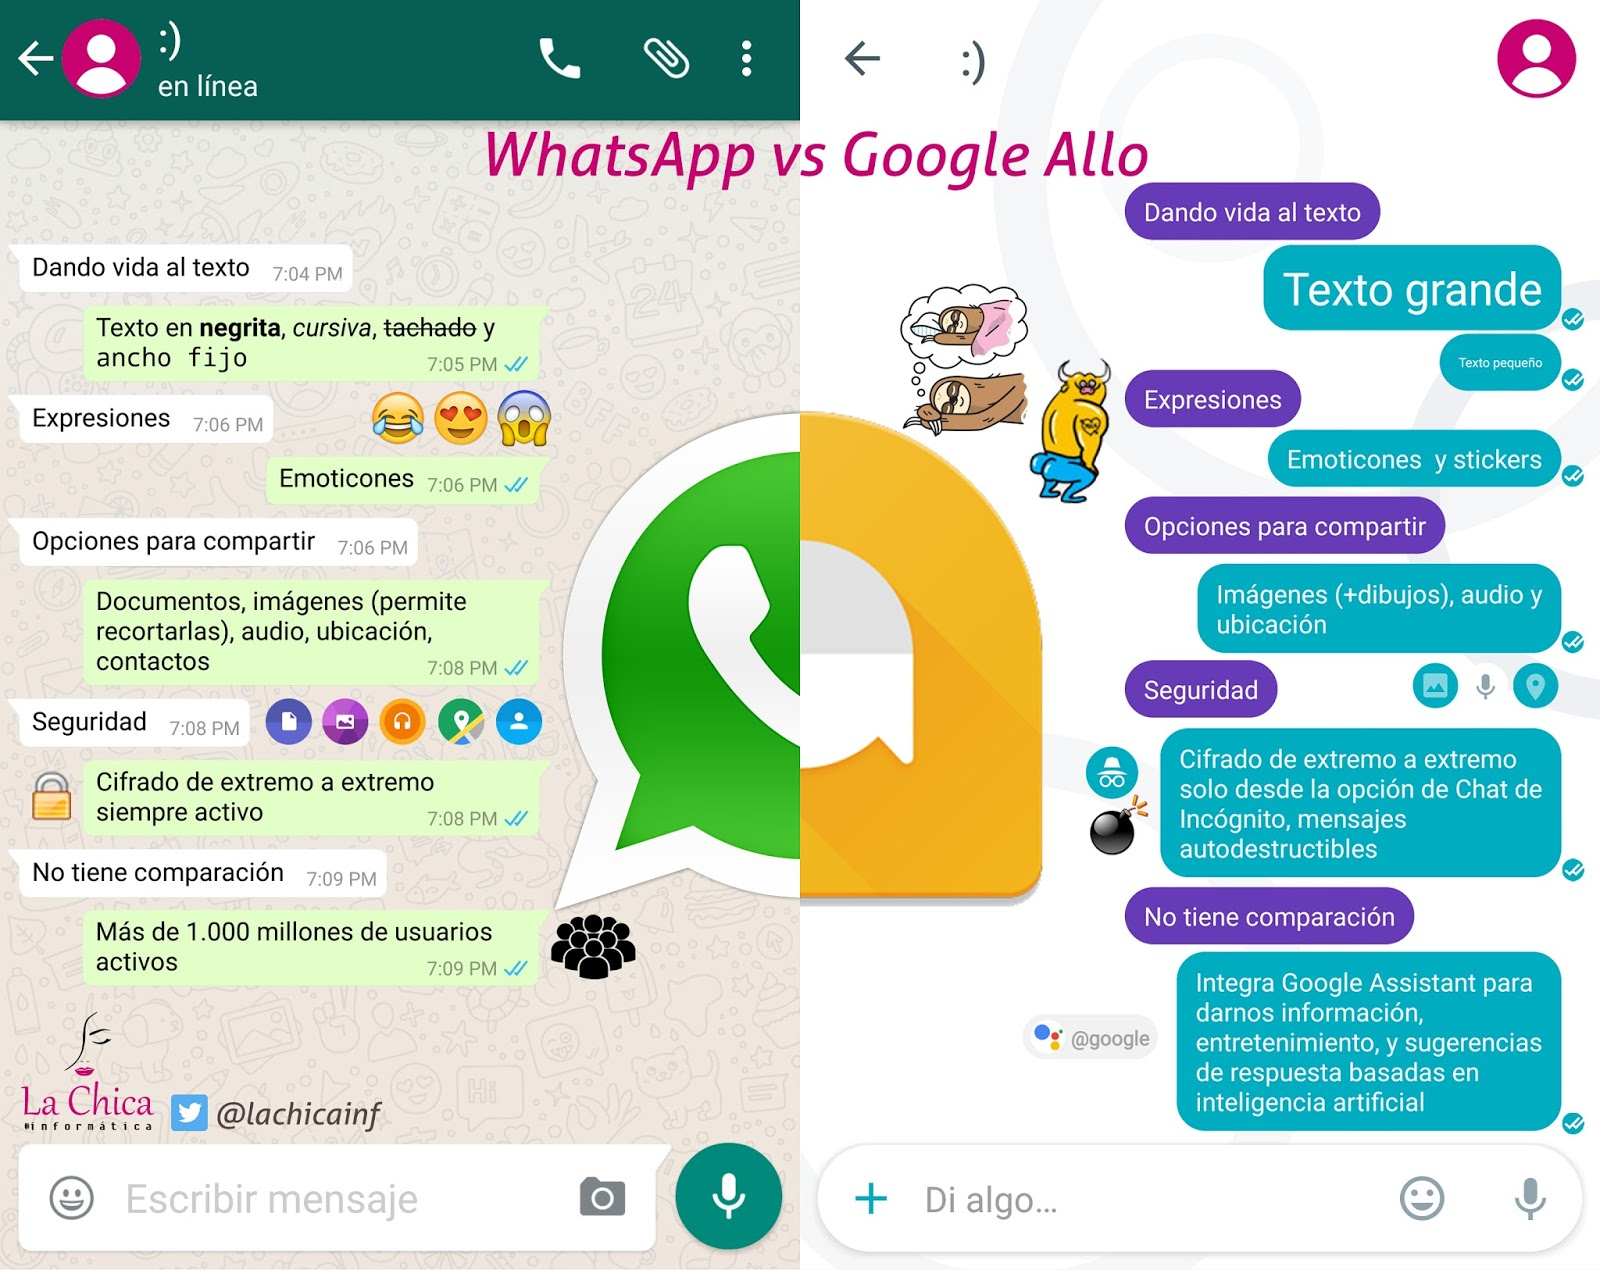 Infografía WhatsApp vs Google Allo